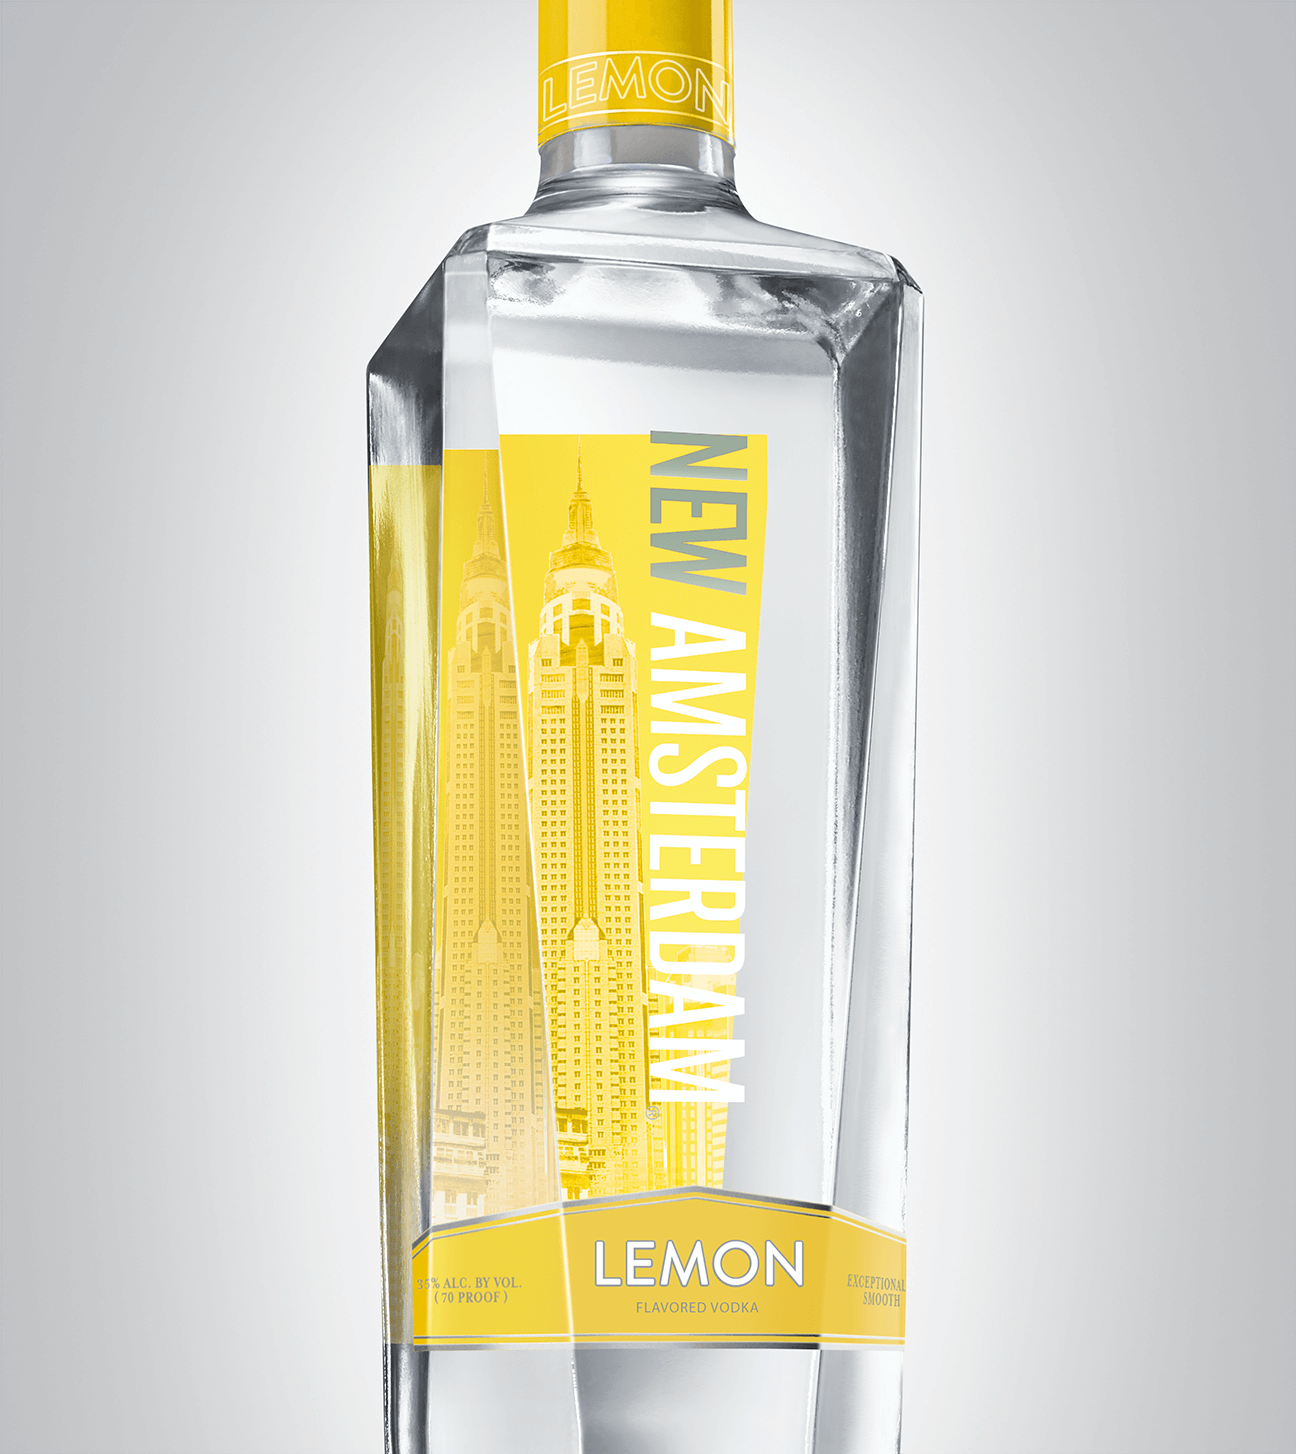 Bottle of New Amsterdam Lemon